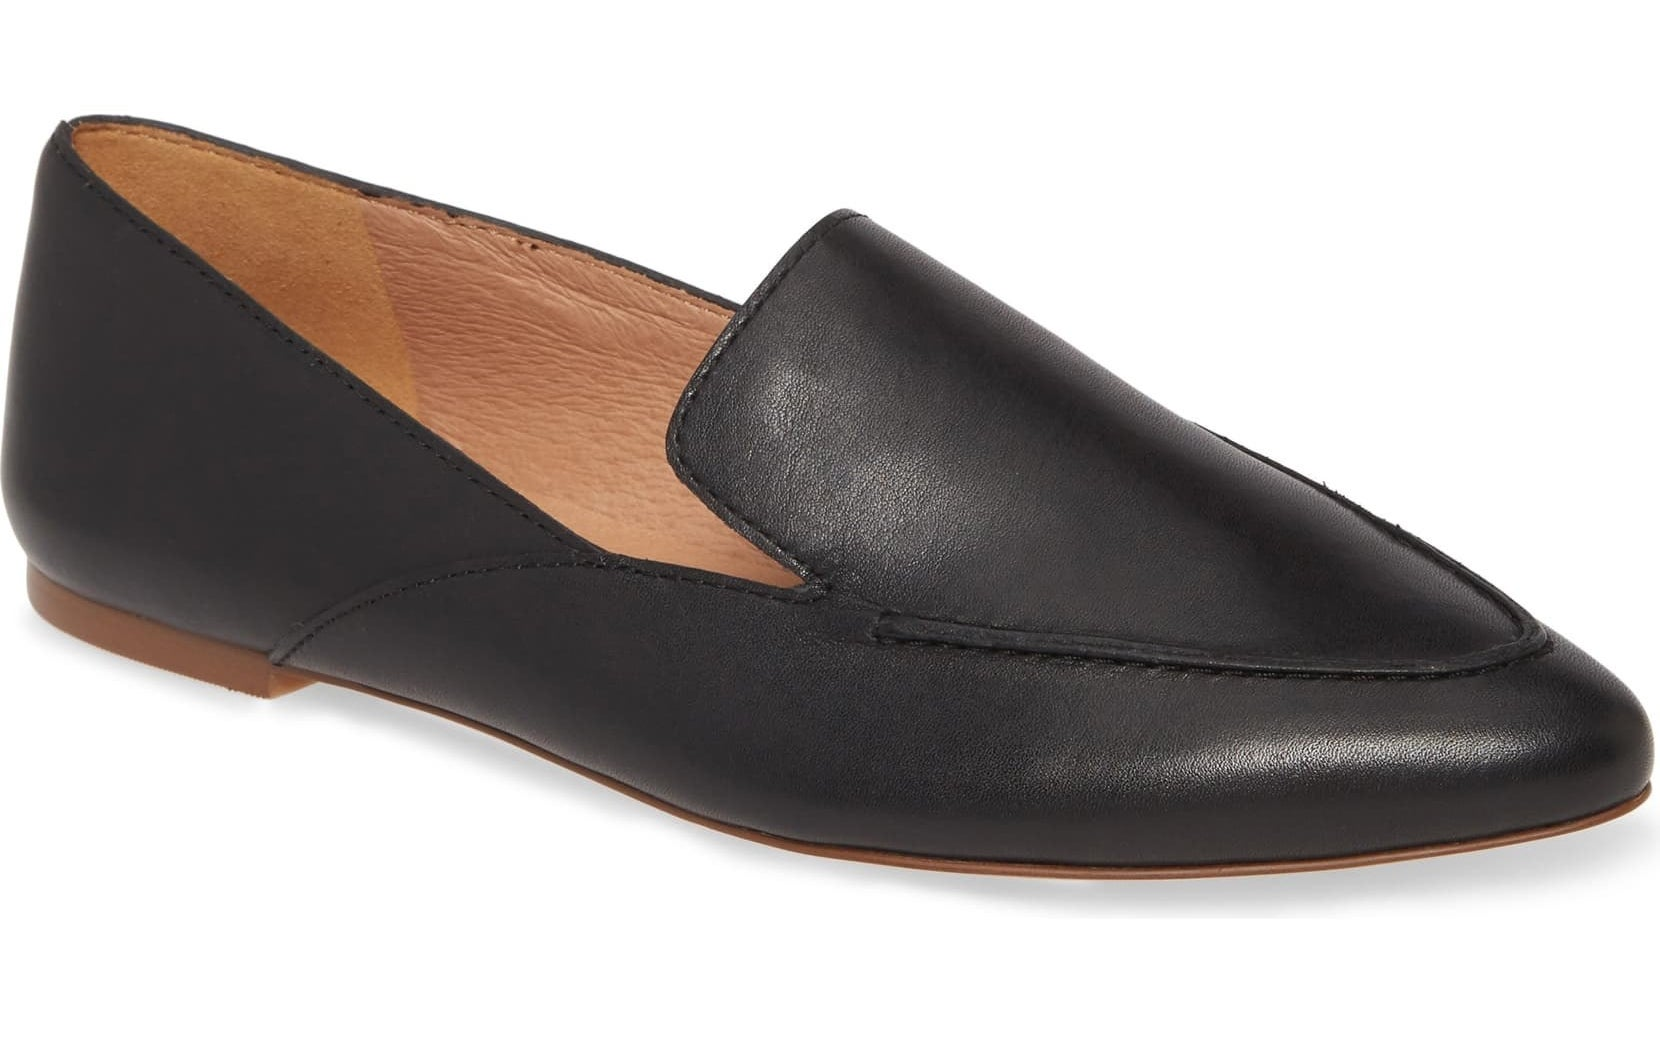 Black flats with light brown inside